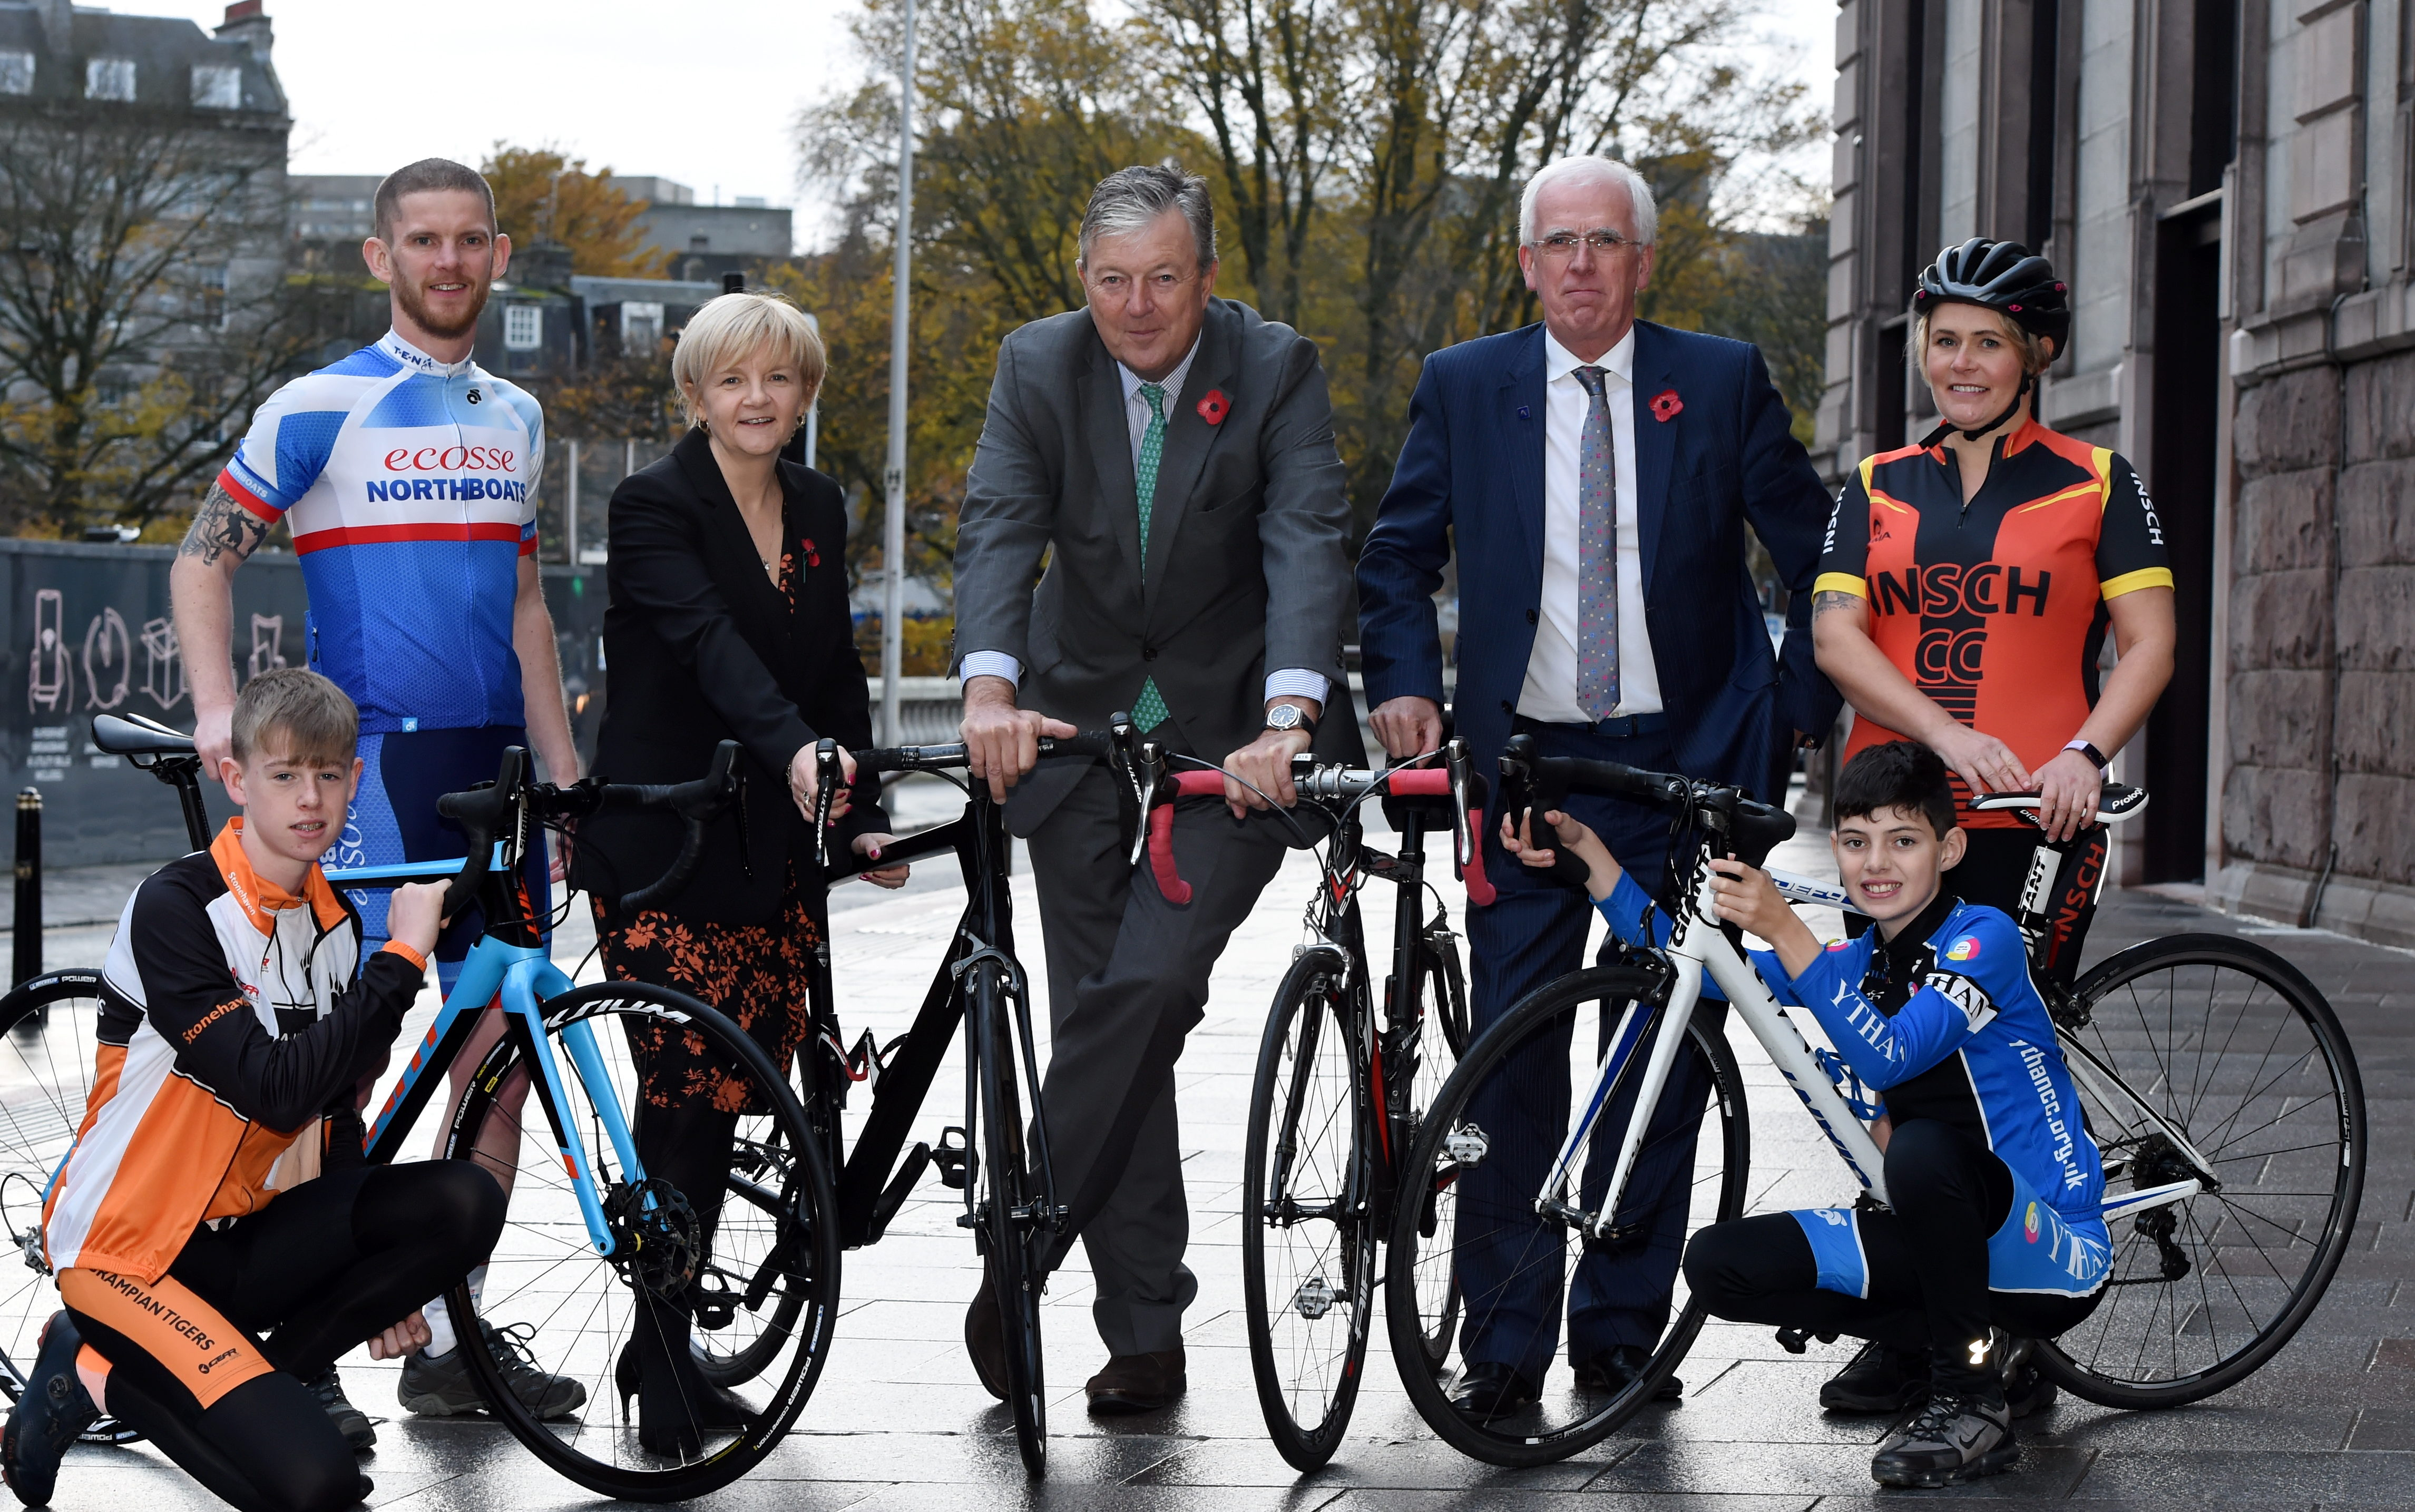 The Tour of Britain launch in Aberdeen earlier this year. Picture by Kenny Elrick.